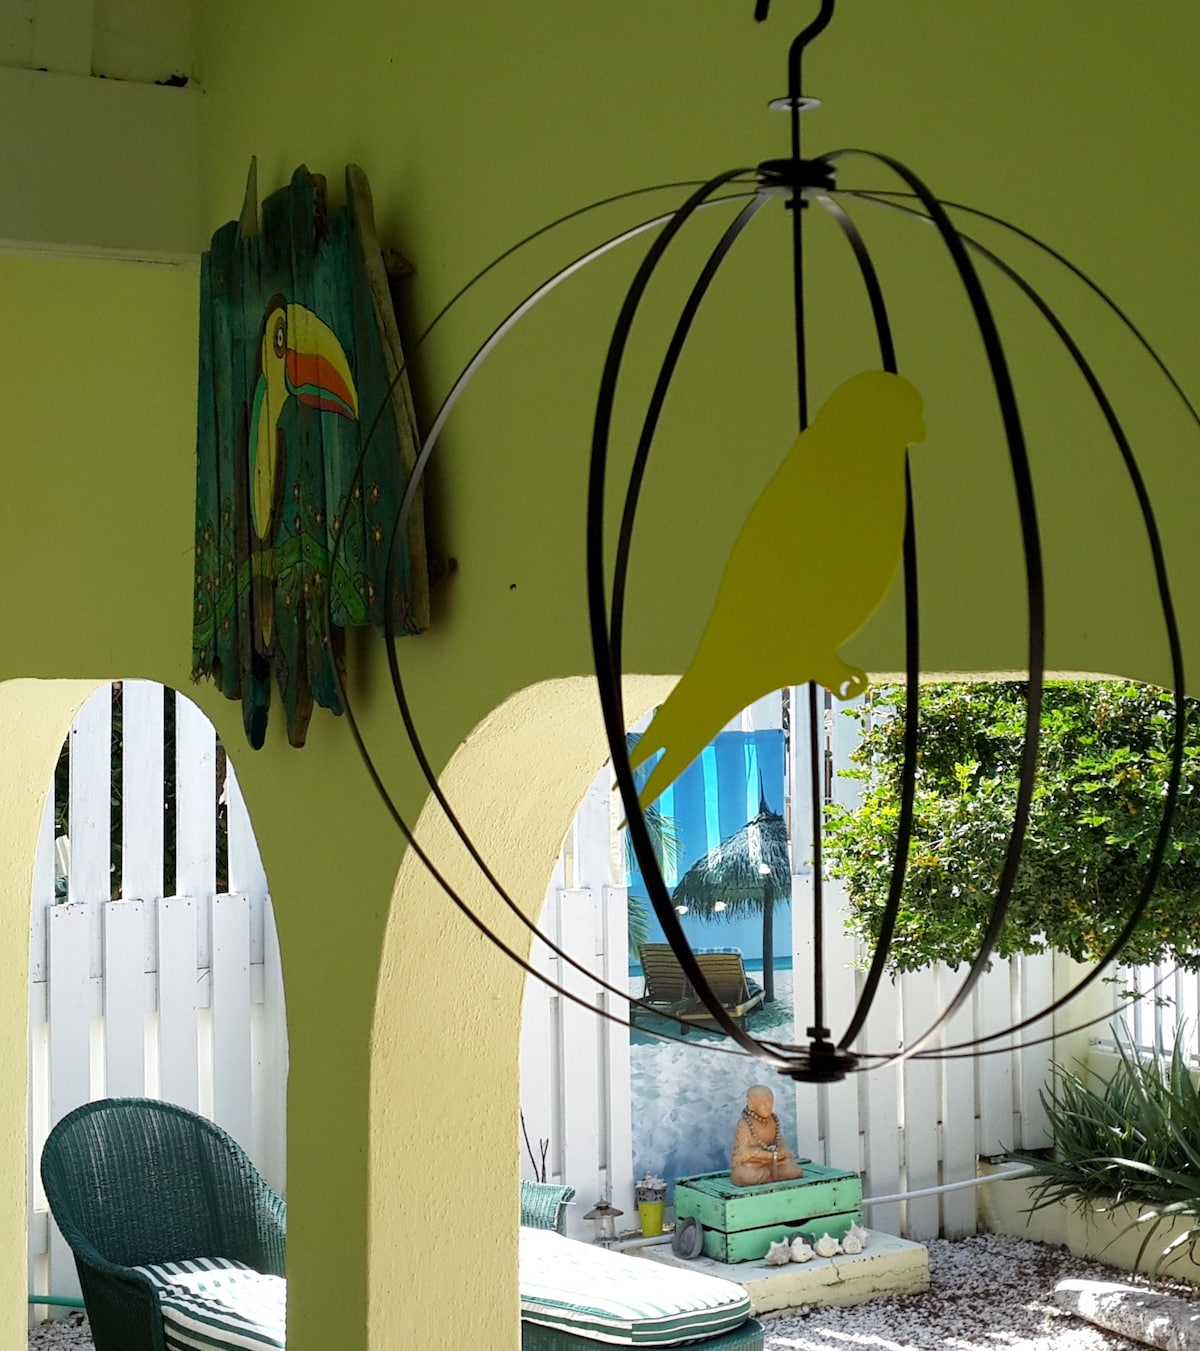 Casa Dora treats you to colorful Caribbean art.